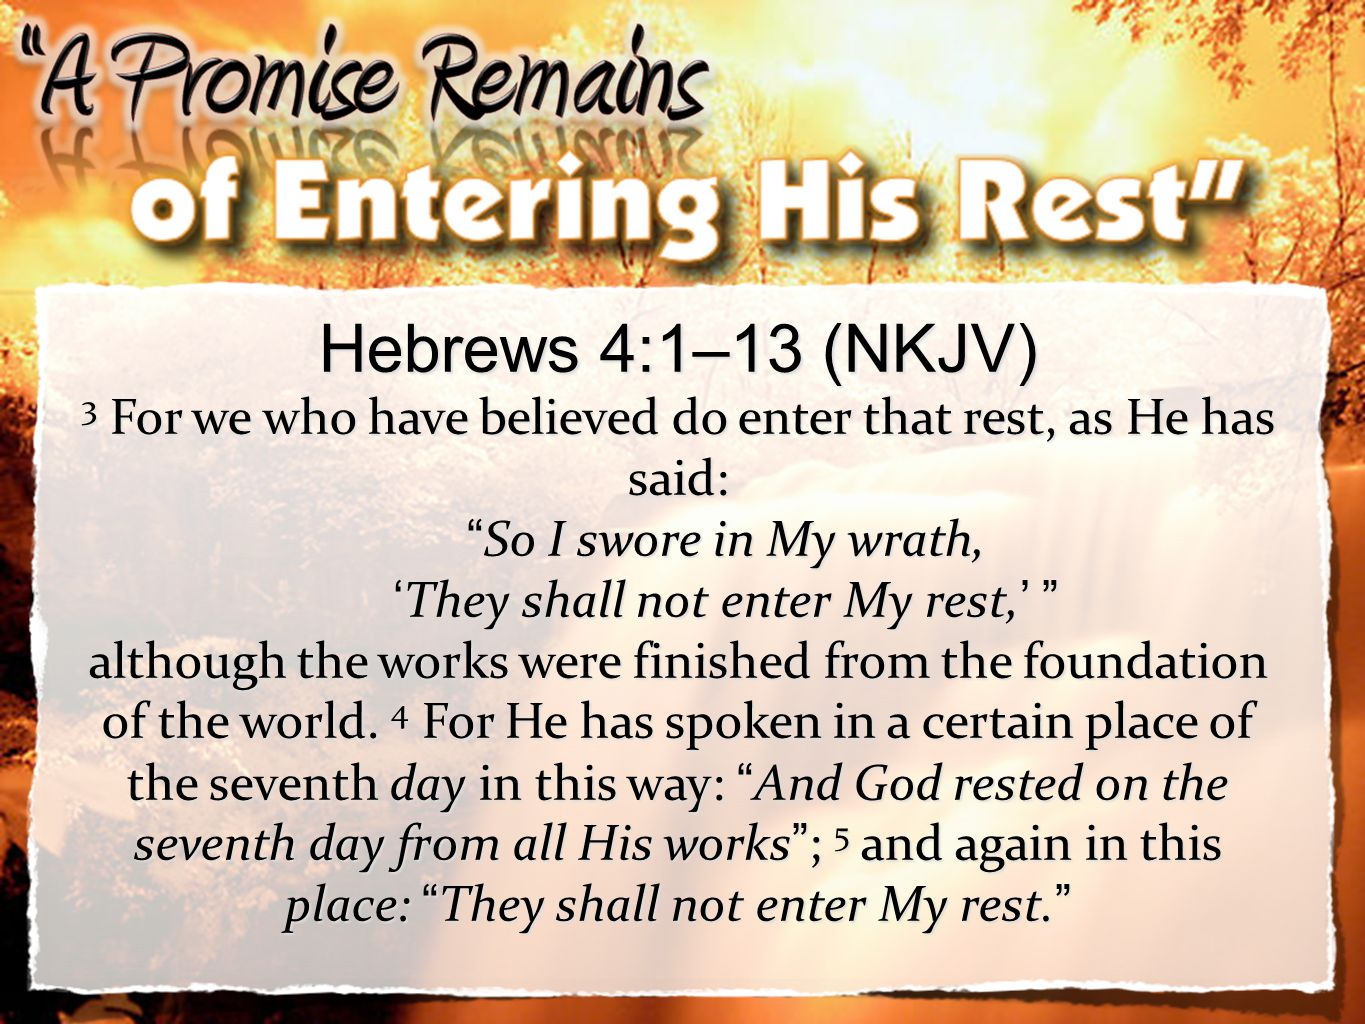 3 Hebrews 4:1–13 (NKJV) 3 For we who have believed do enter that rest, as He has said: So I swore in My wrath, So I swore in My wrath, They shall not enter My rest, They shall not enter My rest, although the works were finished from the foundation of the world.